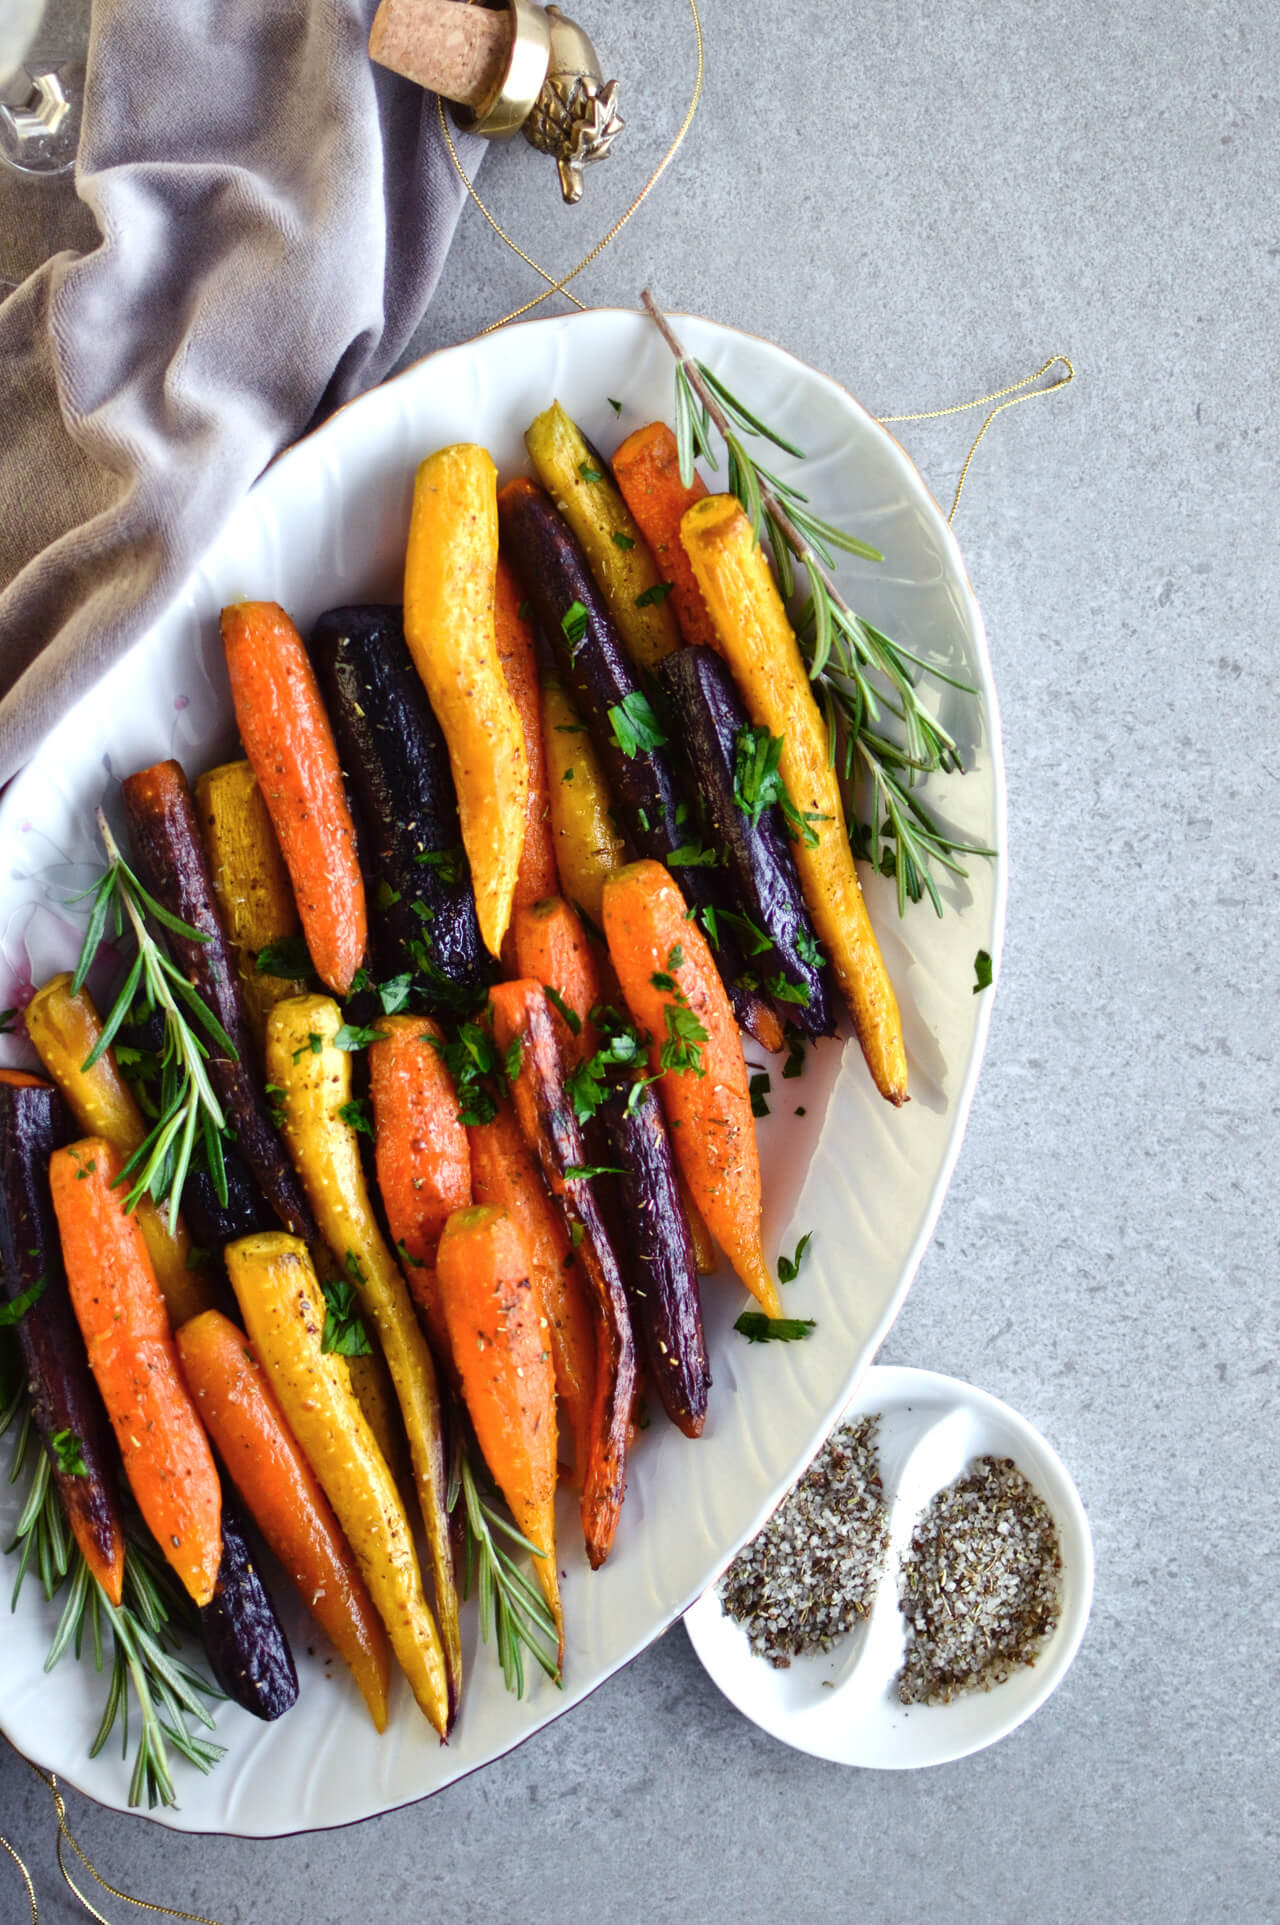 Recipe for simple herb roasted carrots - rainbow carrots baked in pan